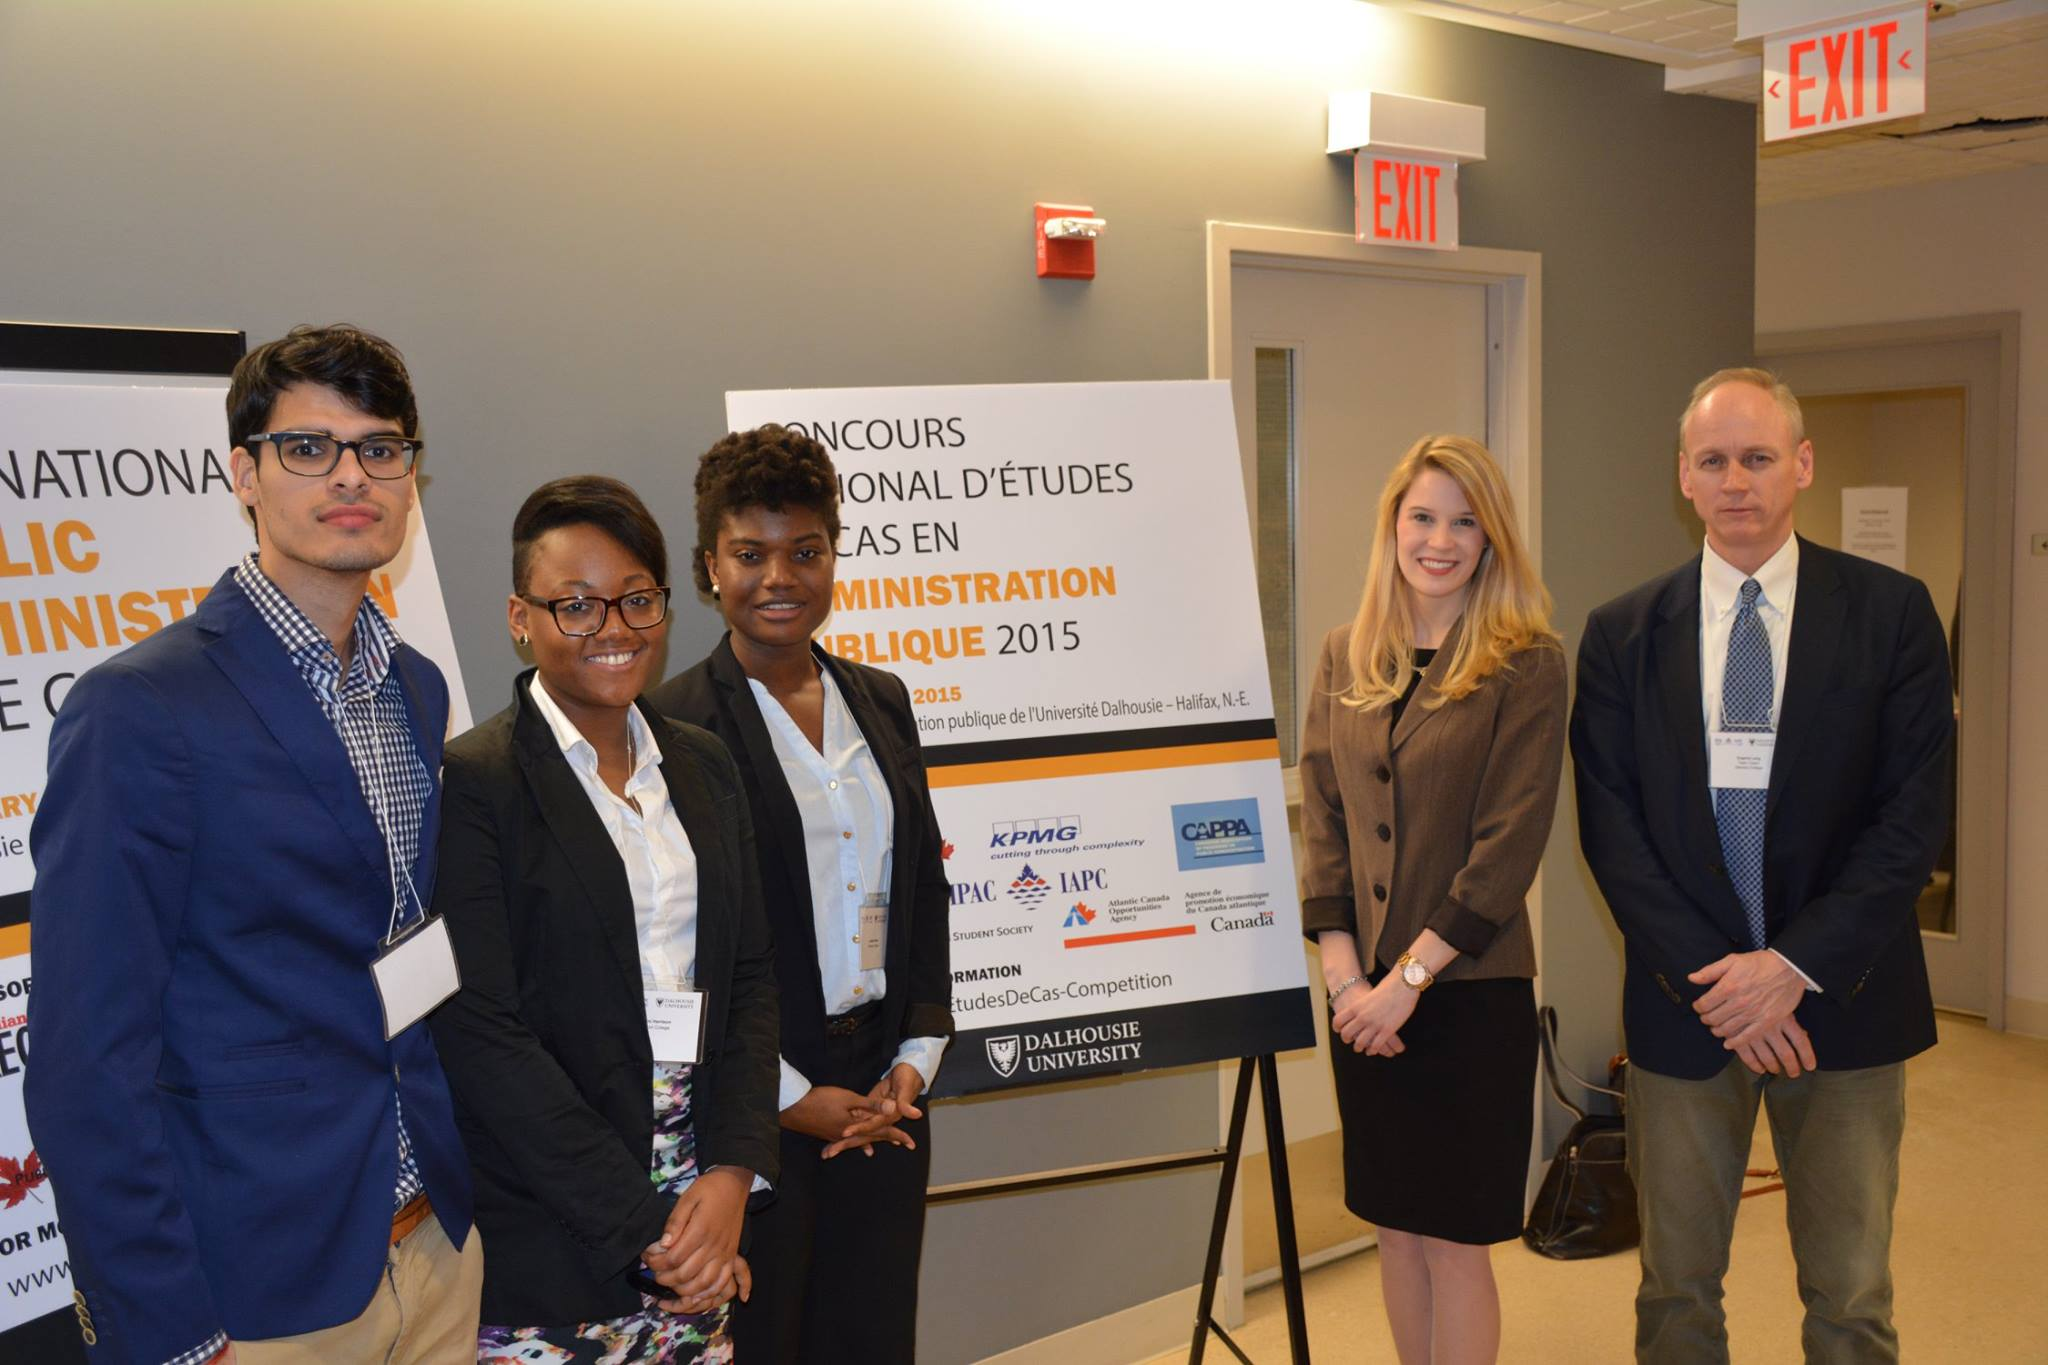 national public administration case study competition The actual case study used in hosa competition will be a secret problem) 7 and the food and drug administration (fda) conducted epidemiologic, traceback.